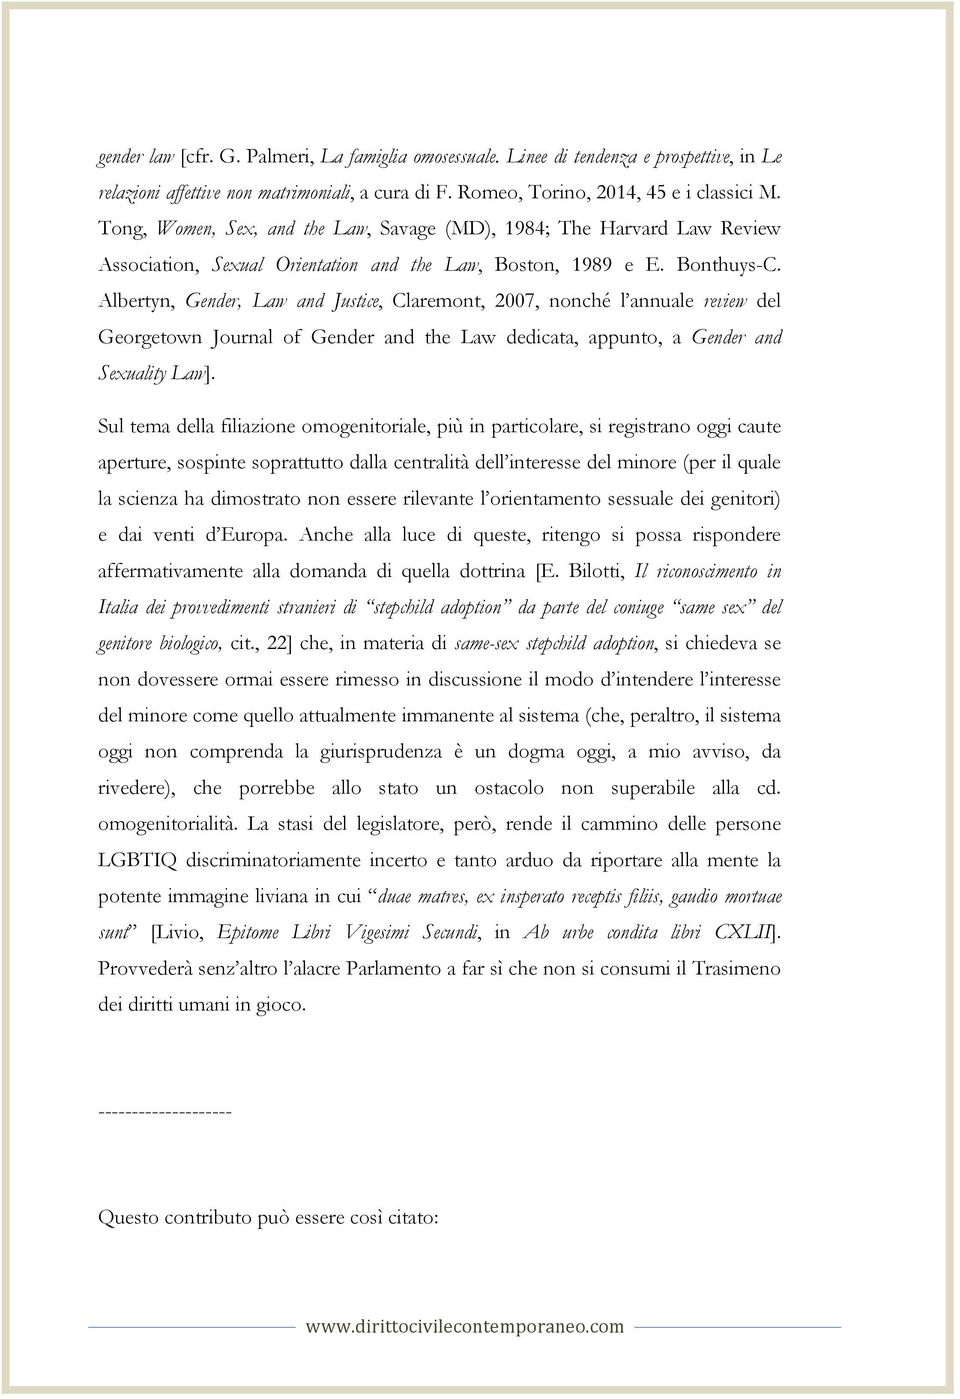 Albertyn, Gender, Law and Justice, Claremont, 2007, nonché l annuale review del Georgetown Journal of Gender and the Law dedicata, appunto, a Gender and Sexuality Law].